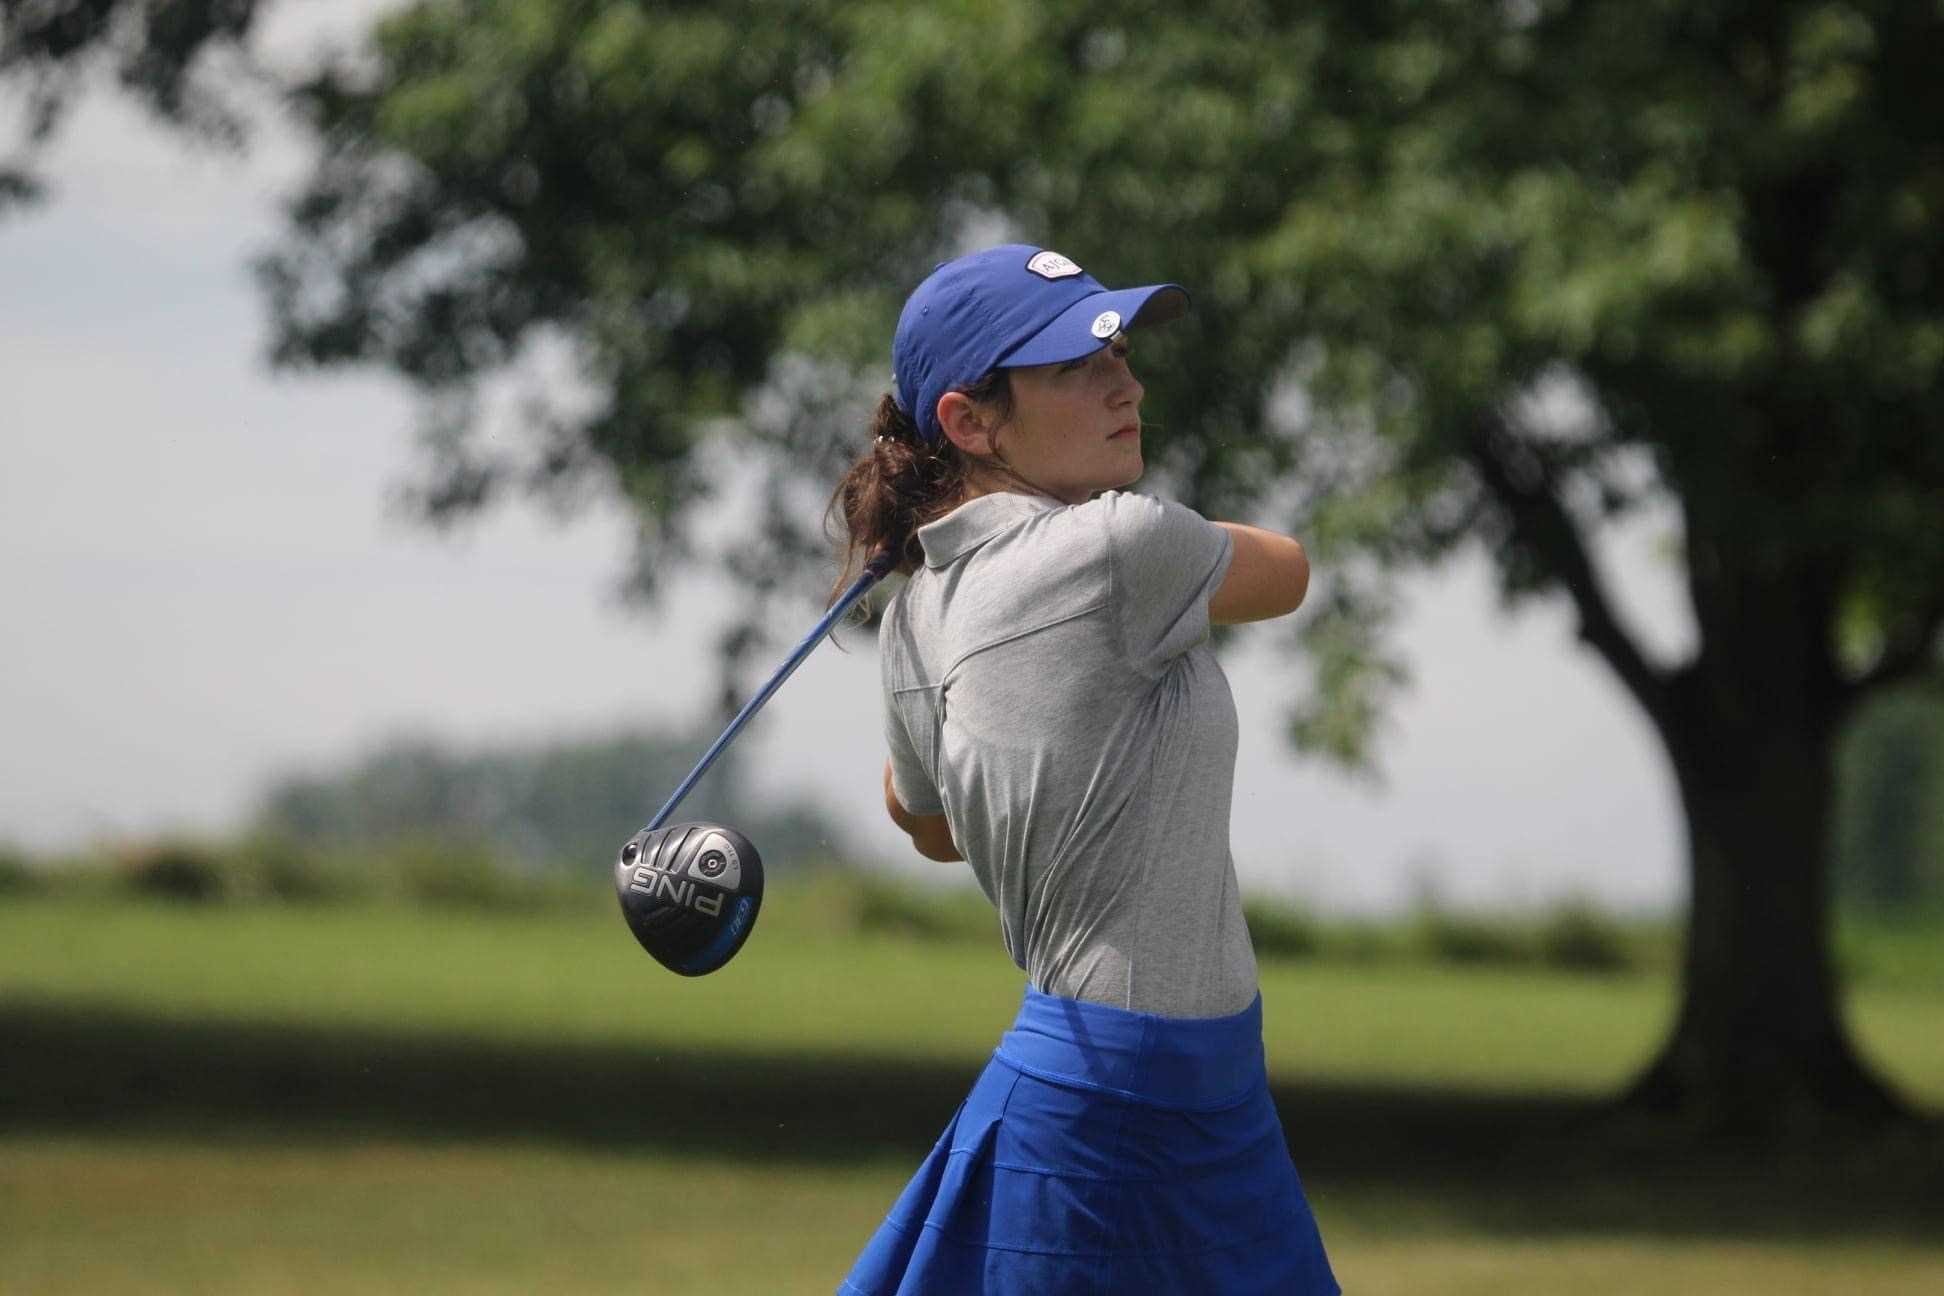 SAA Golfer Named Girls Athlete of the Week & Stars are Undefeated